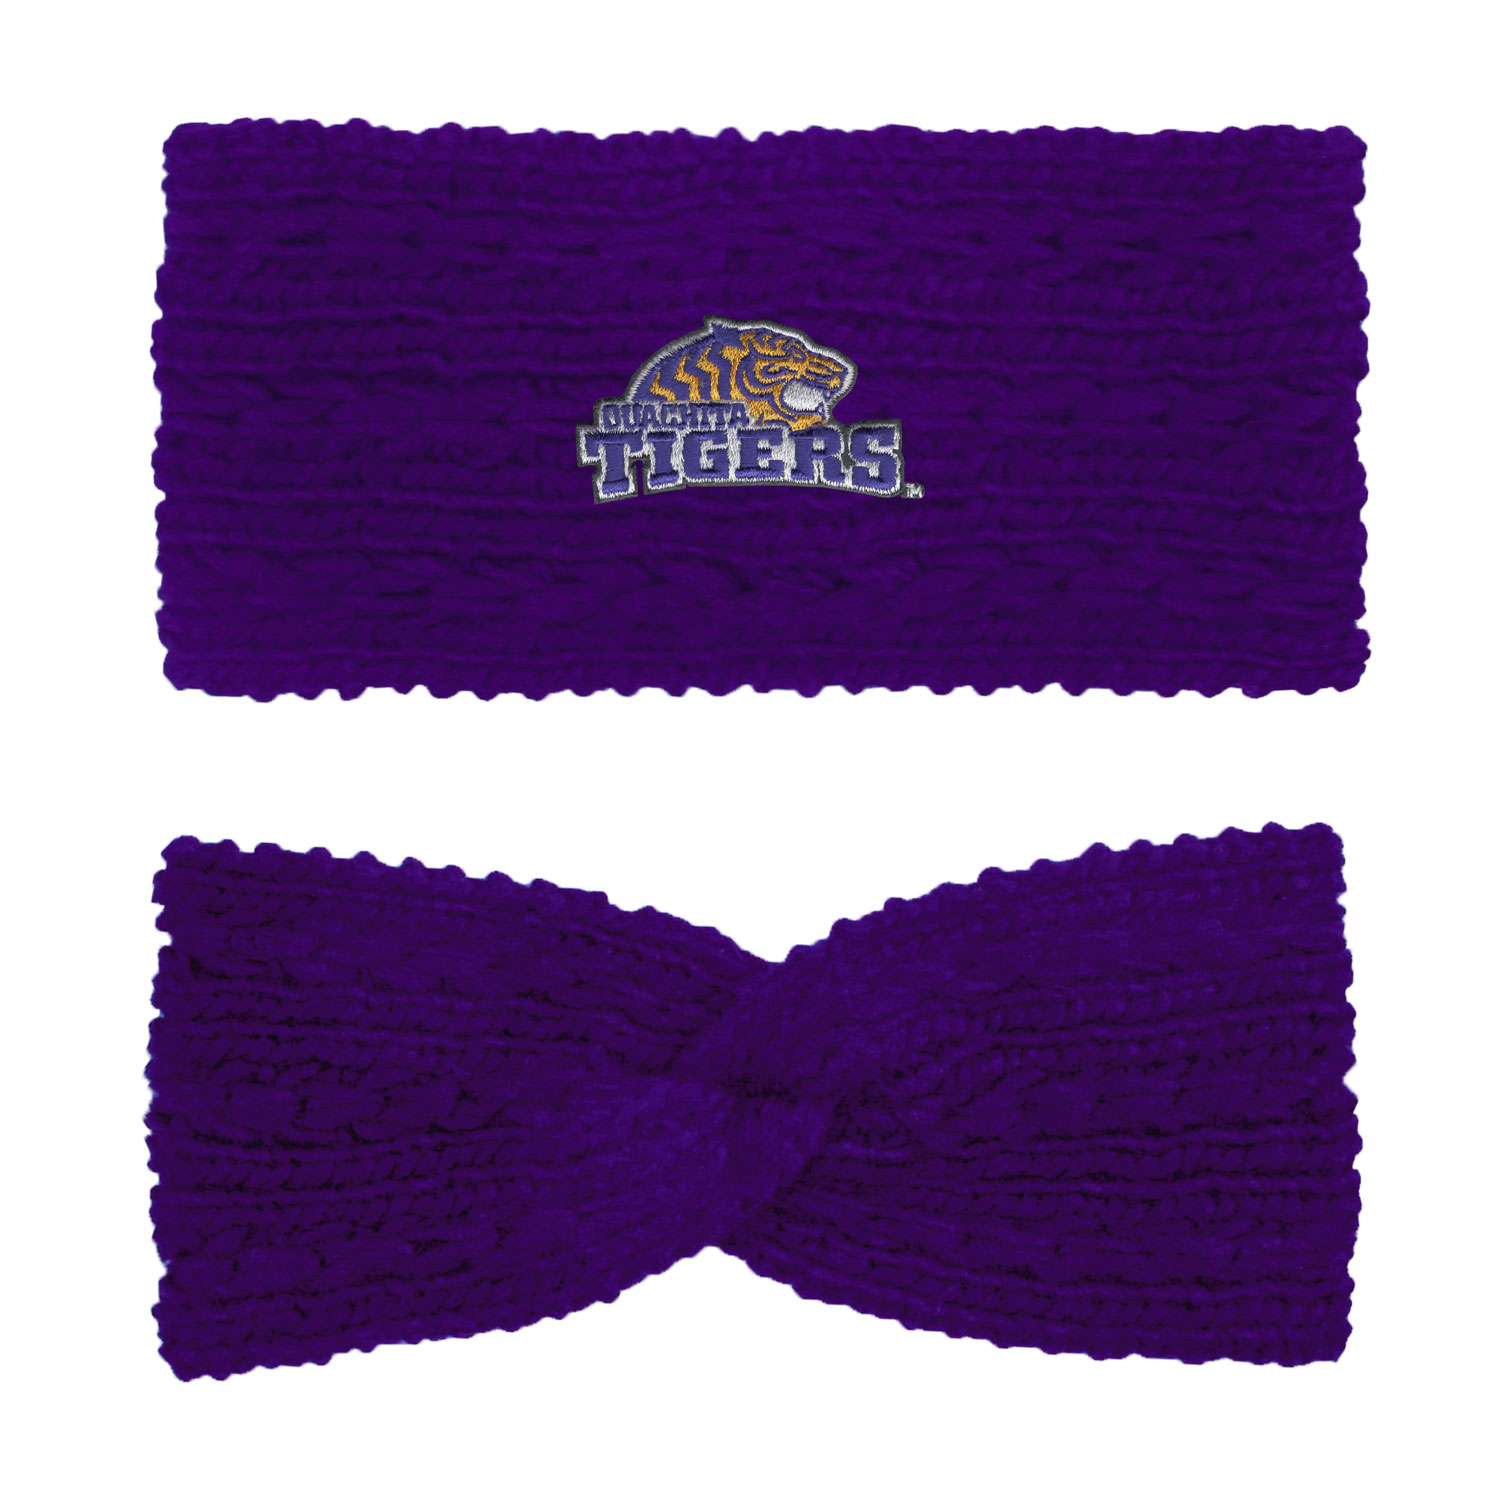 OUACHITA TIGERS KNIT TWIST EAR BAND